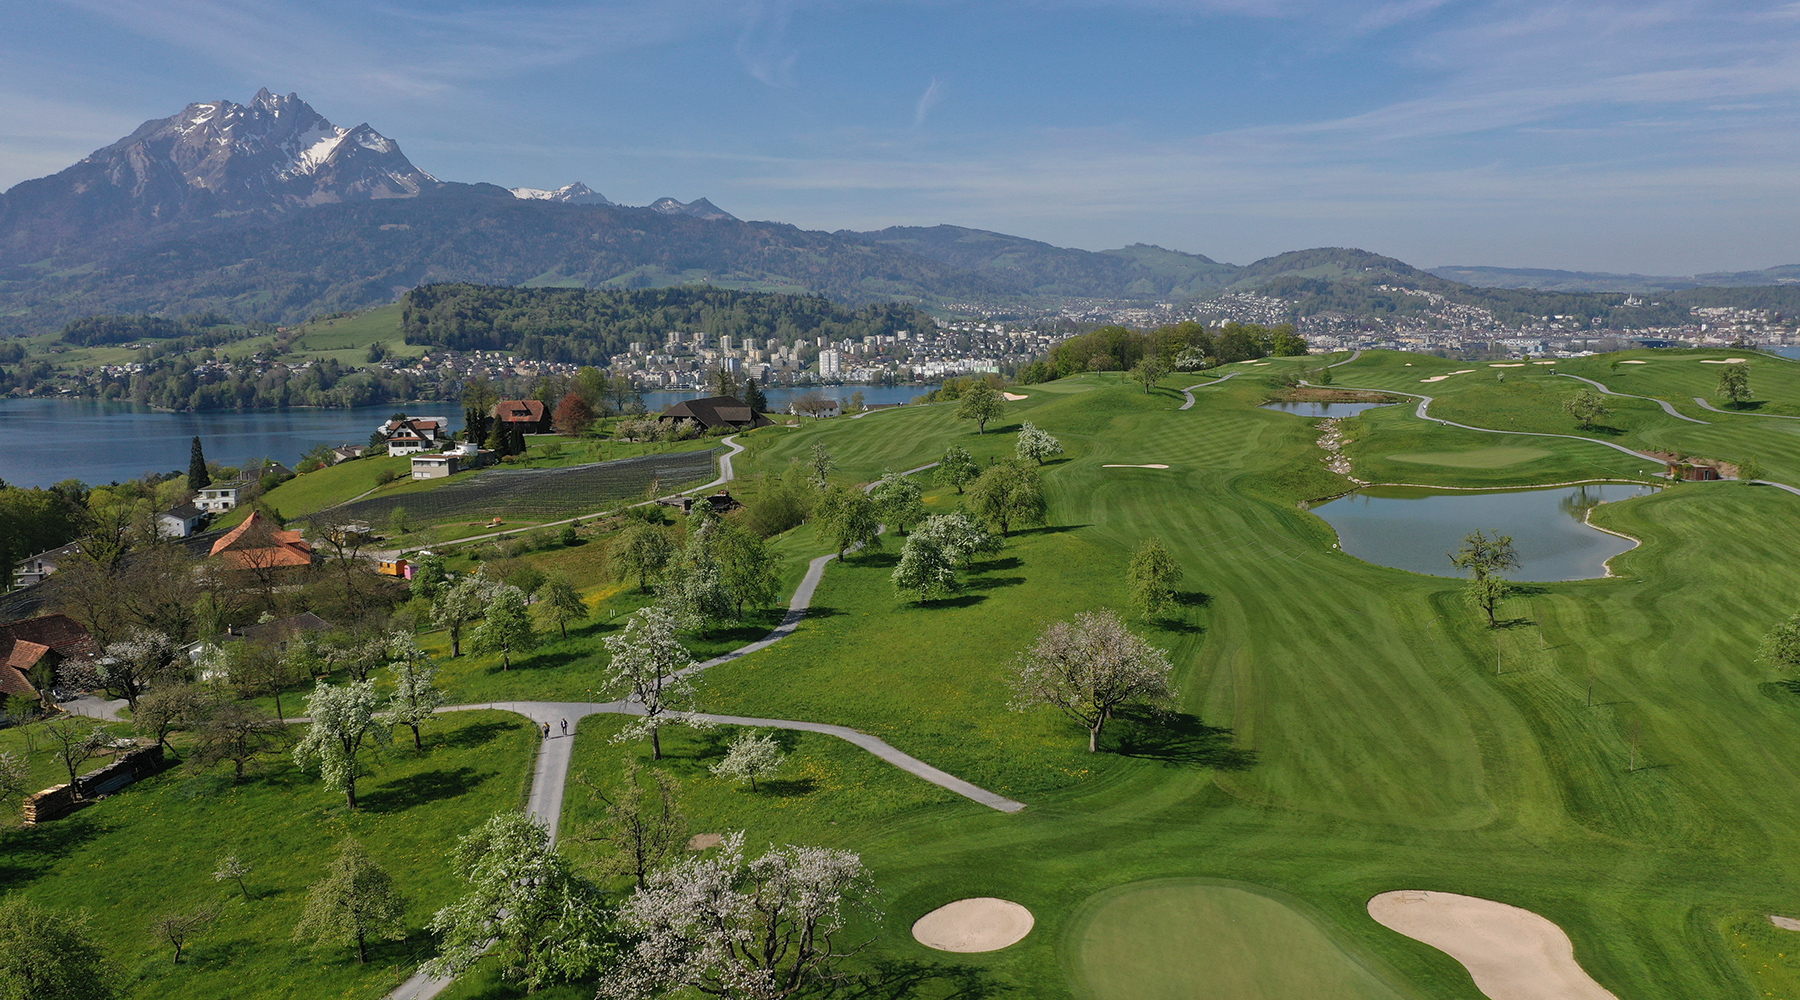 <span class='cycle-icon GOLFING'></span><span class='cycle-title'>GOLFING</span><span class='cycle-subtitle'>In front of the imposing panorama of the Pre-Alps with a magnificent view of the world-famous Lake Lucerne</span>